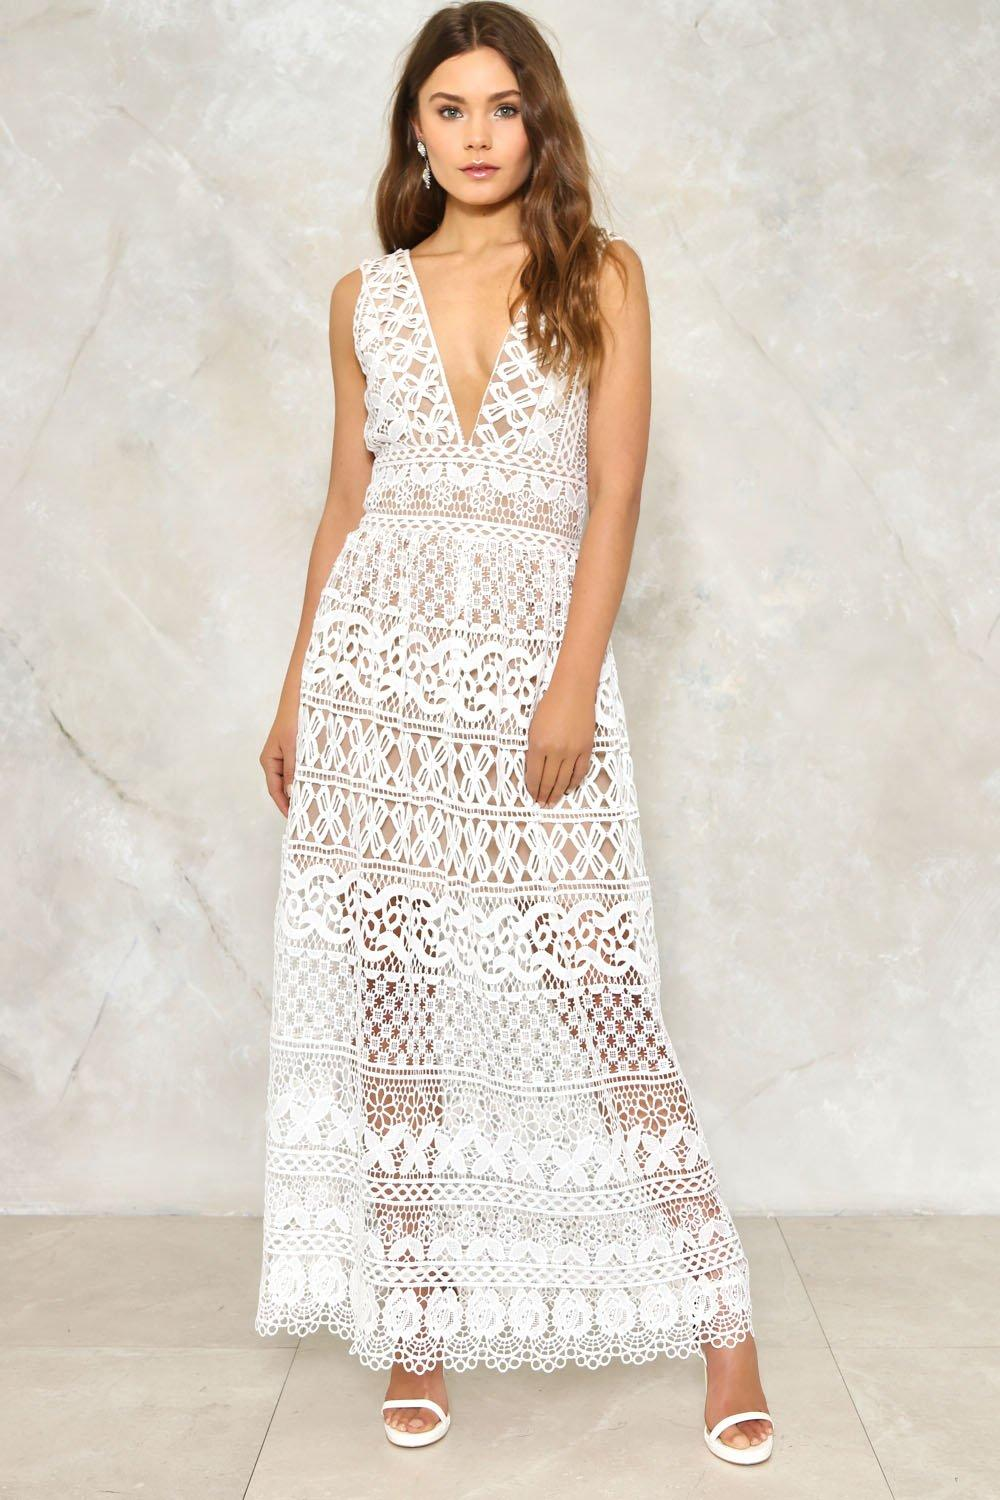 Isobel Crochet Dress Shop Clothes At Nasty Gal